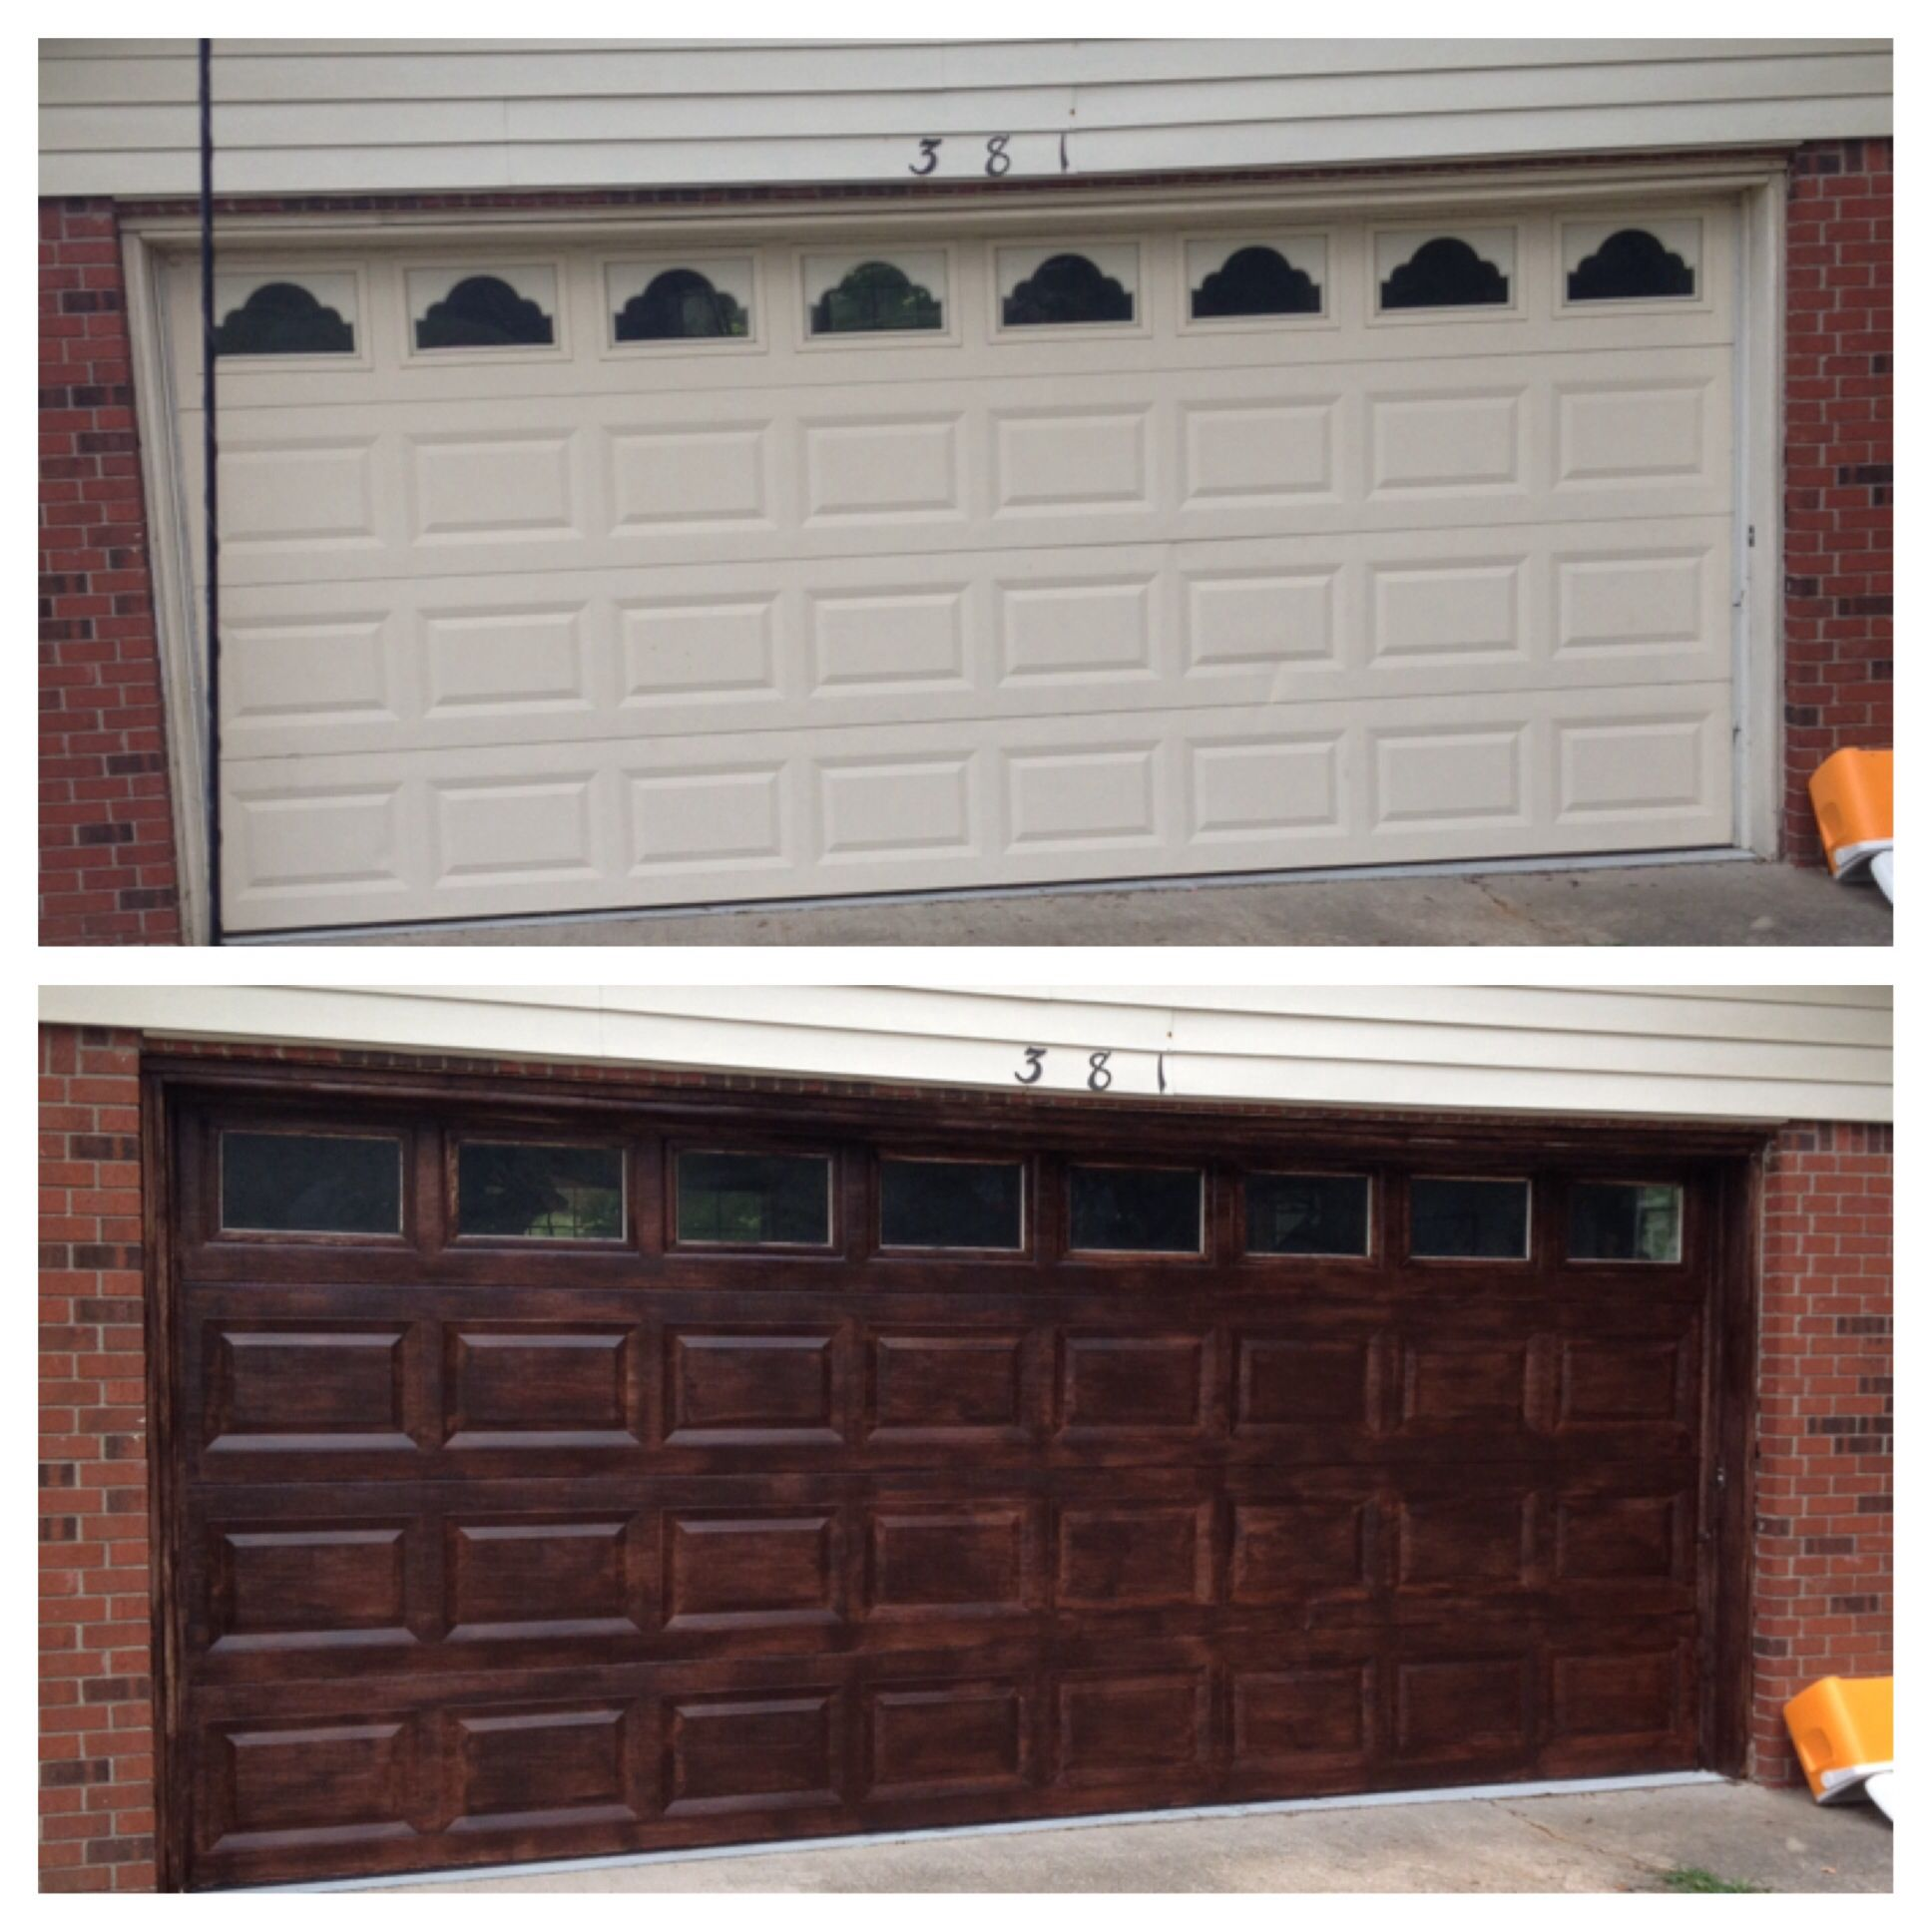 Minwax Gel Stain in Walnut Finish. We removed the window accents and on garage door windows, garage door before and after, garage door spring, garage door exterior, front door stain, garage door christmas, garage door wallpaper, garage door wood stain,